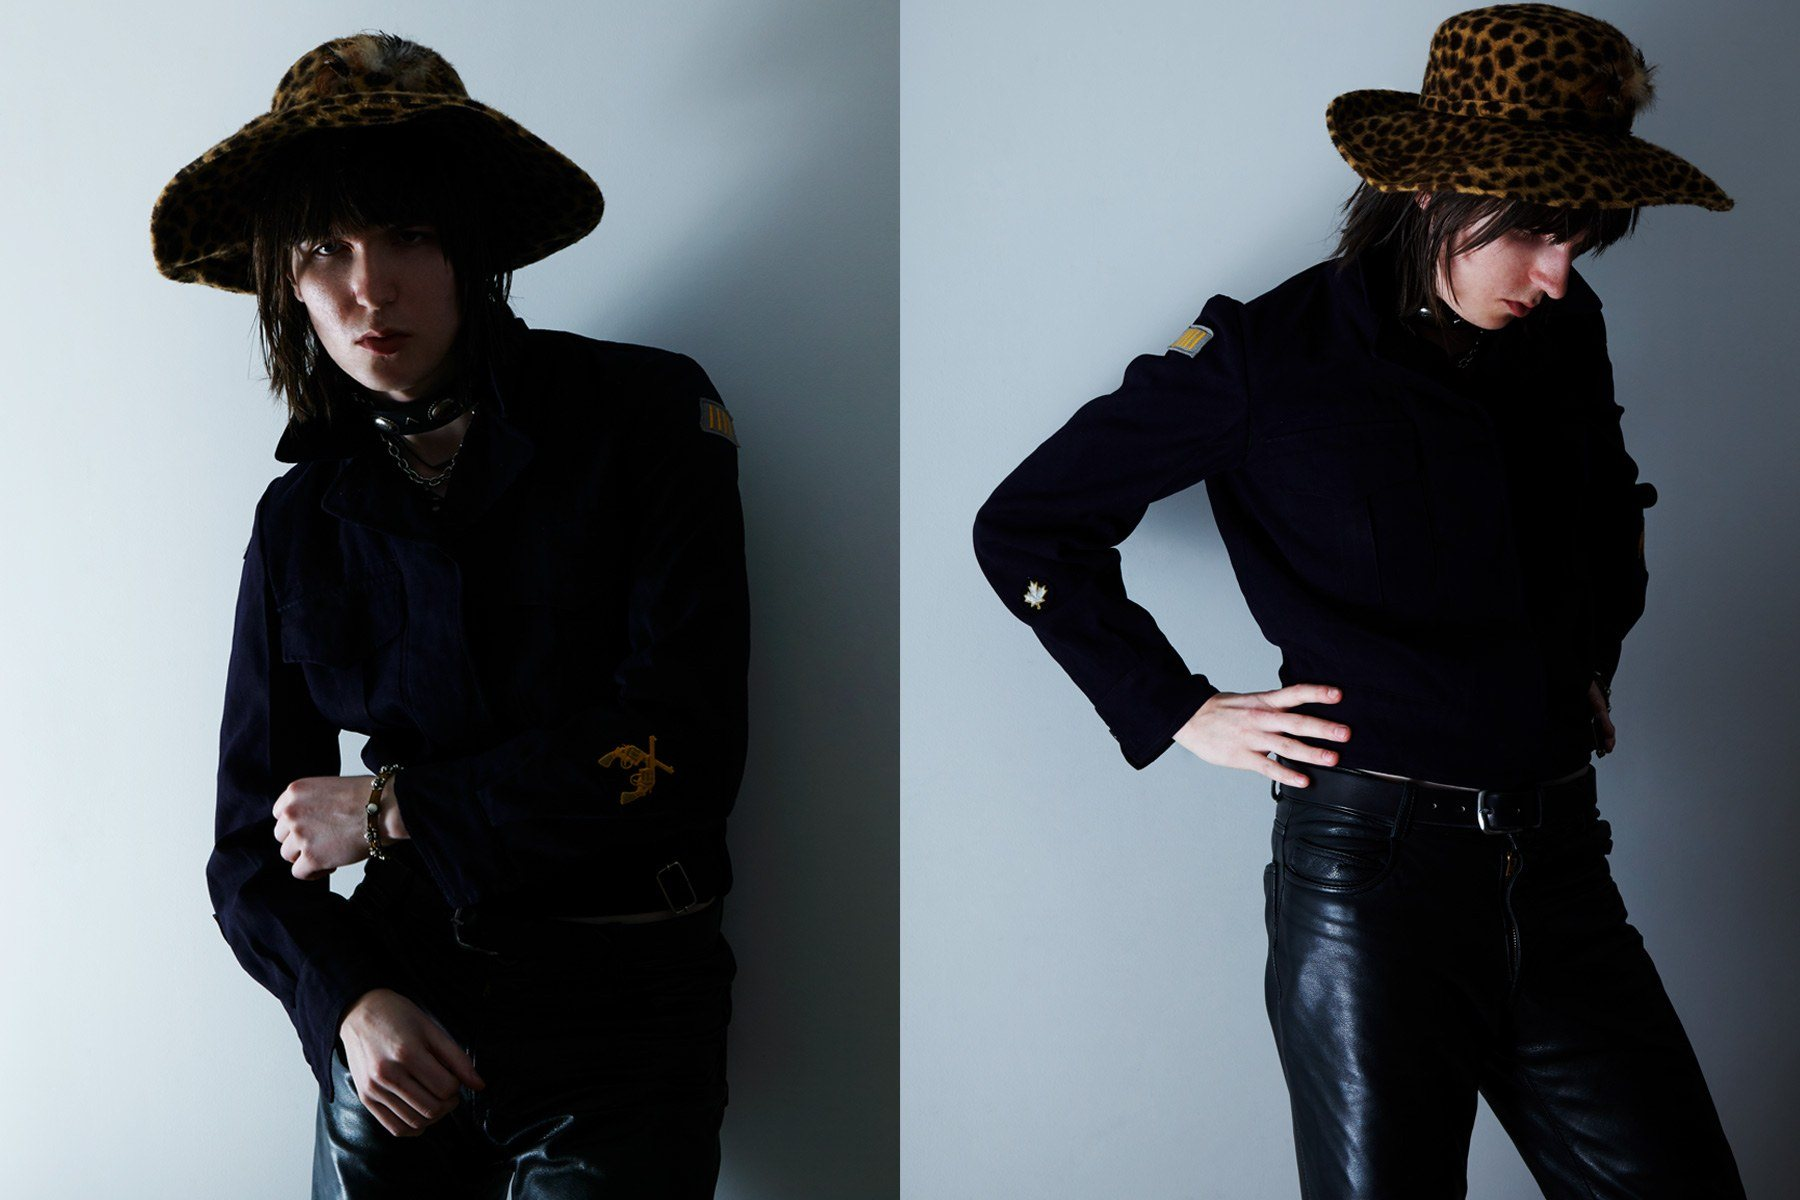 Gordon Lawrence, Beechwood musician, styled by Amber Doyle, with photography by Alexander Thompson for Ponyboy magazine.